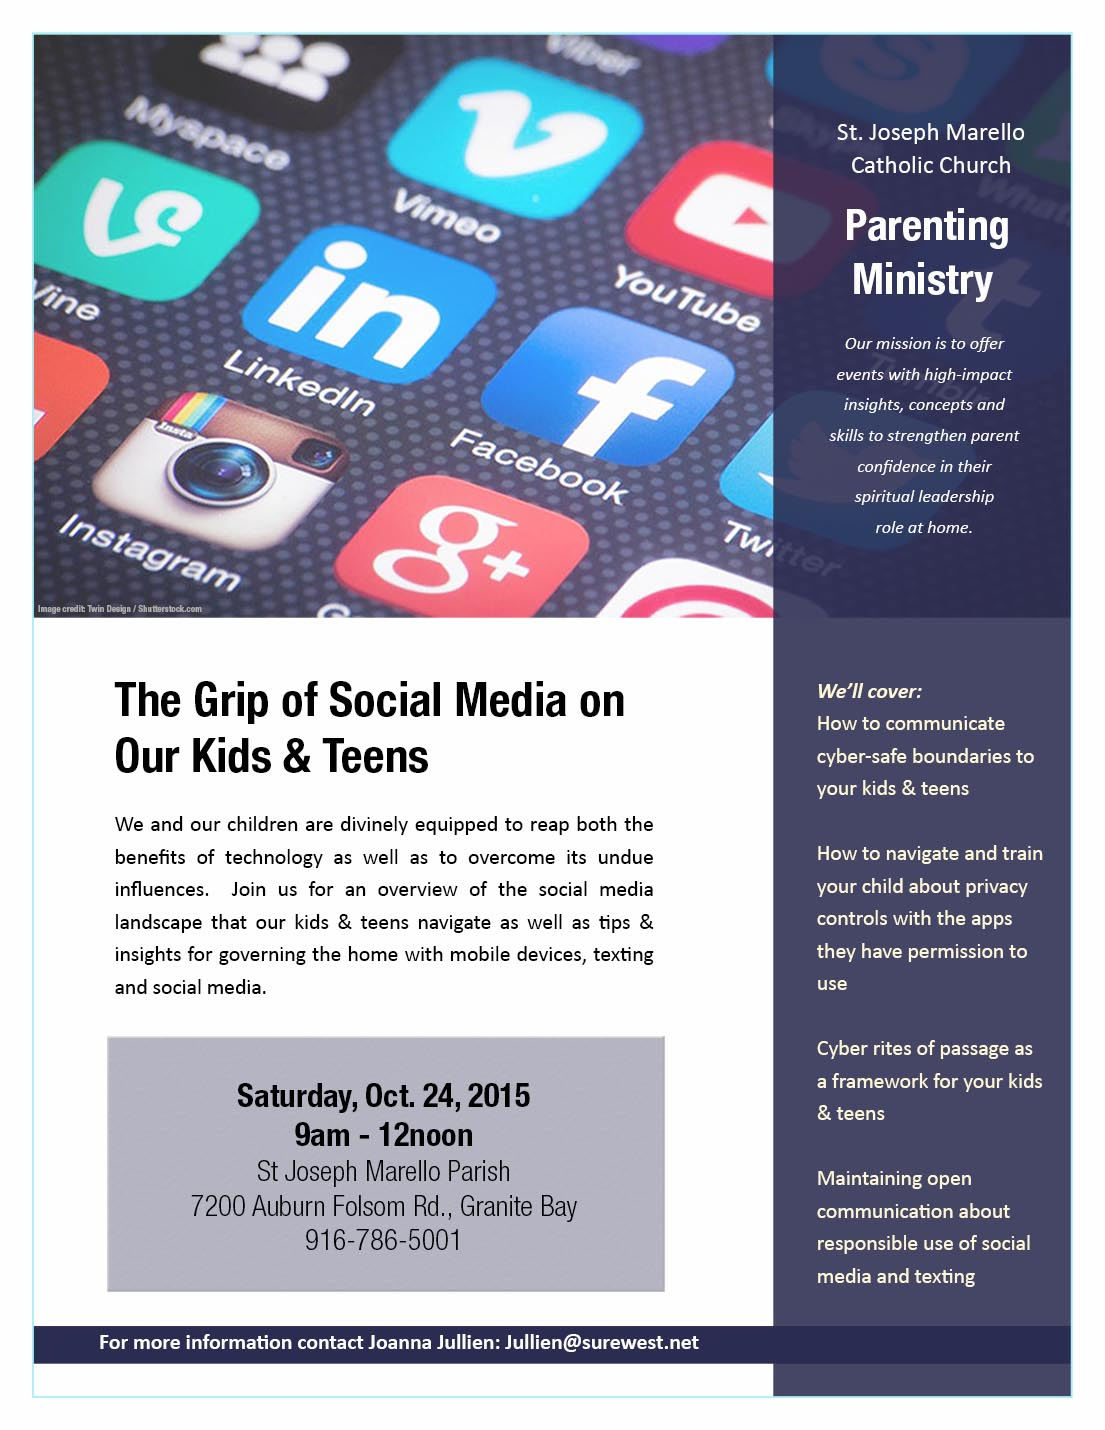 SJM PM Social Media Seminar Flyer3LRes (2)